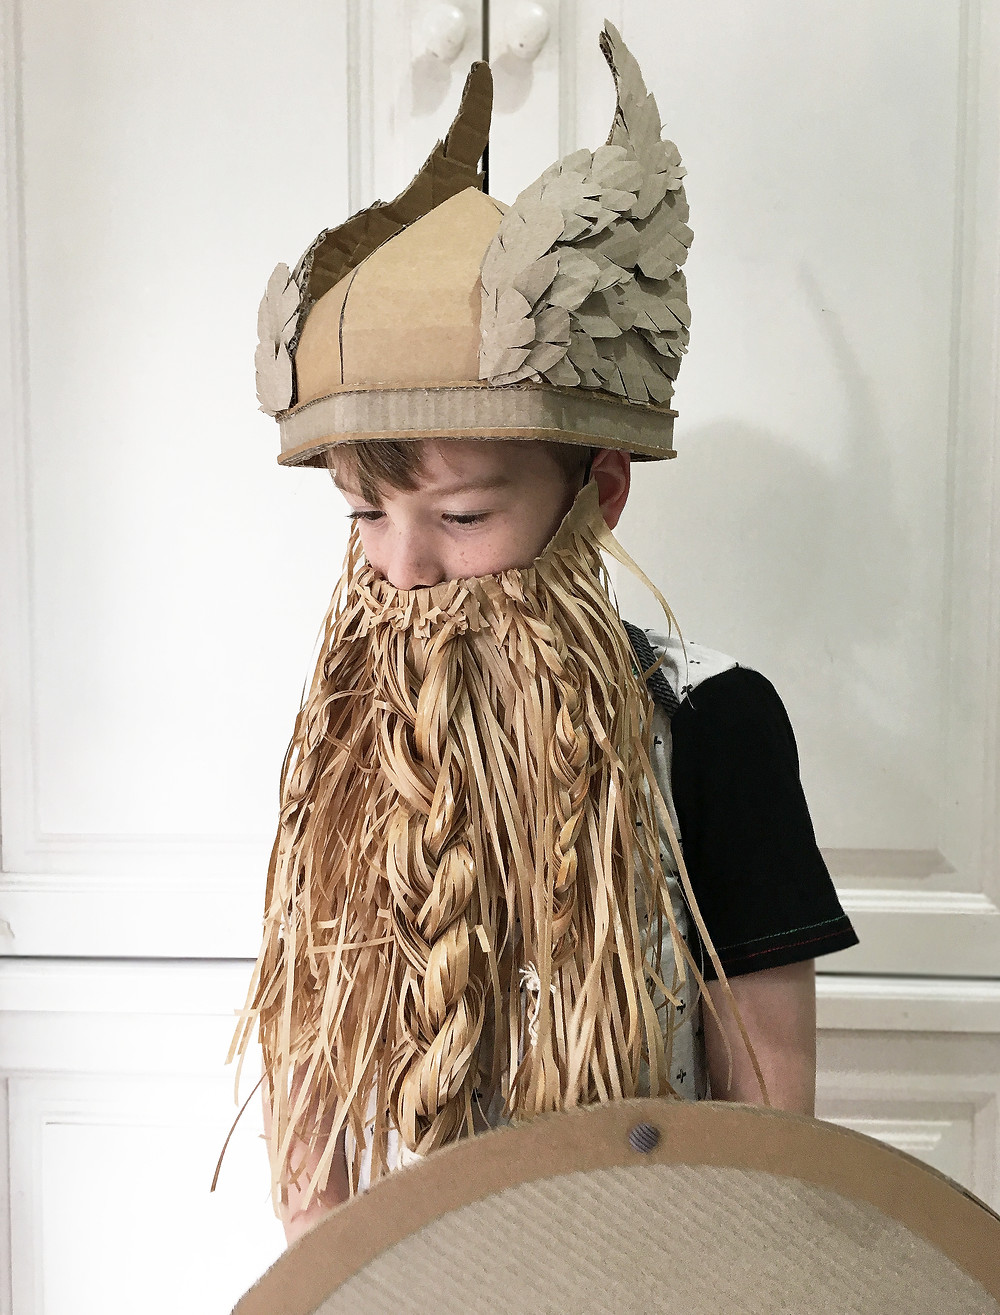 Cardboard Costume Viking Helmet with Wings